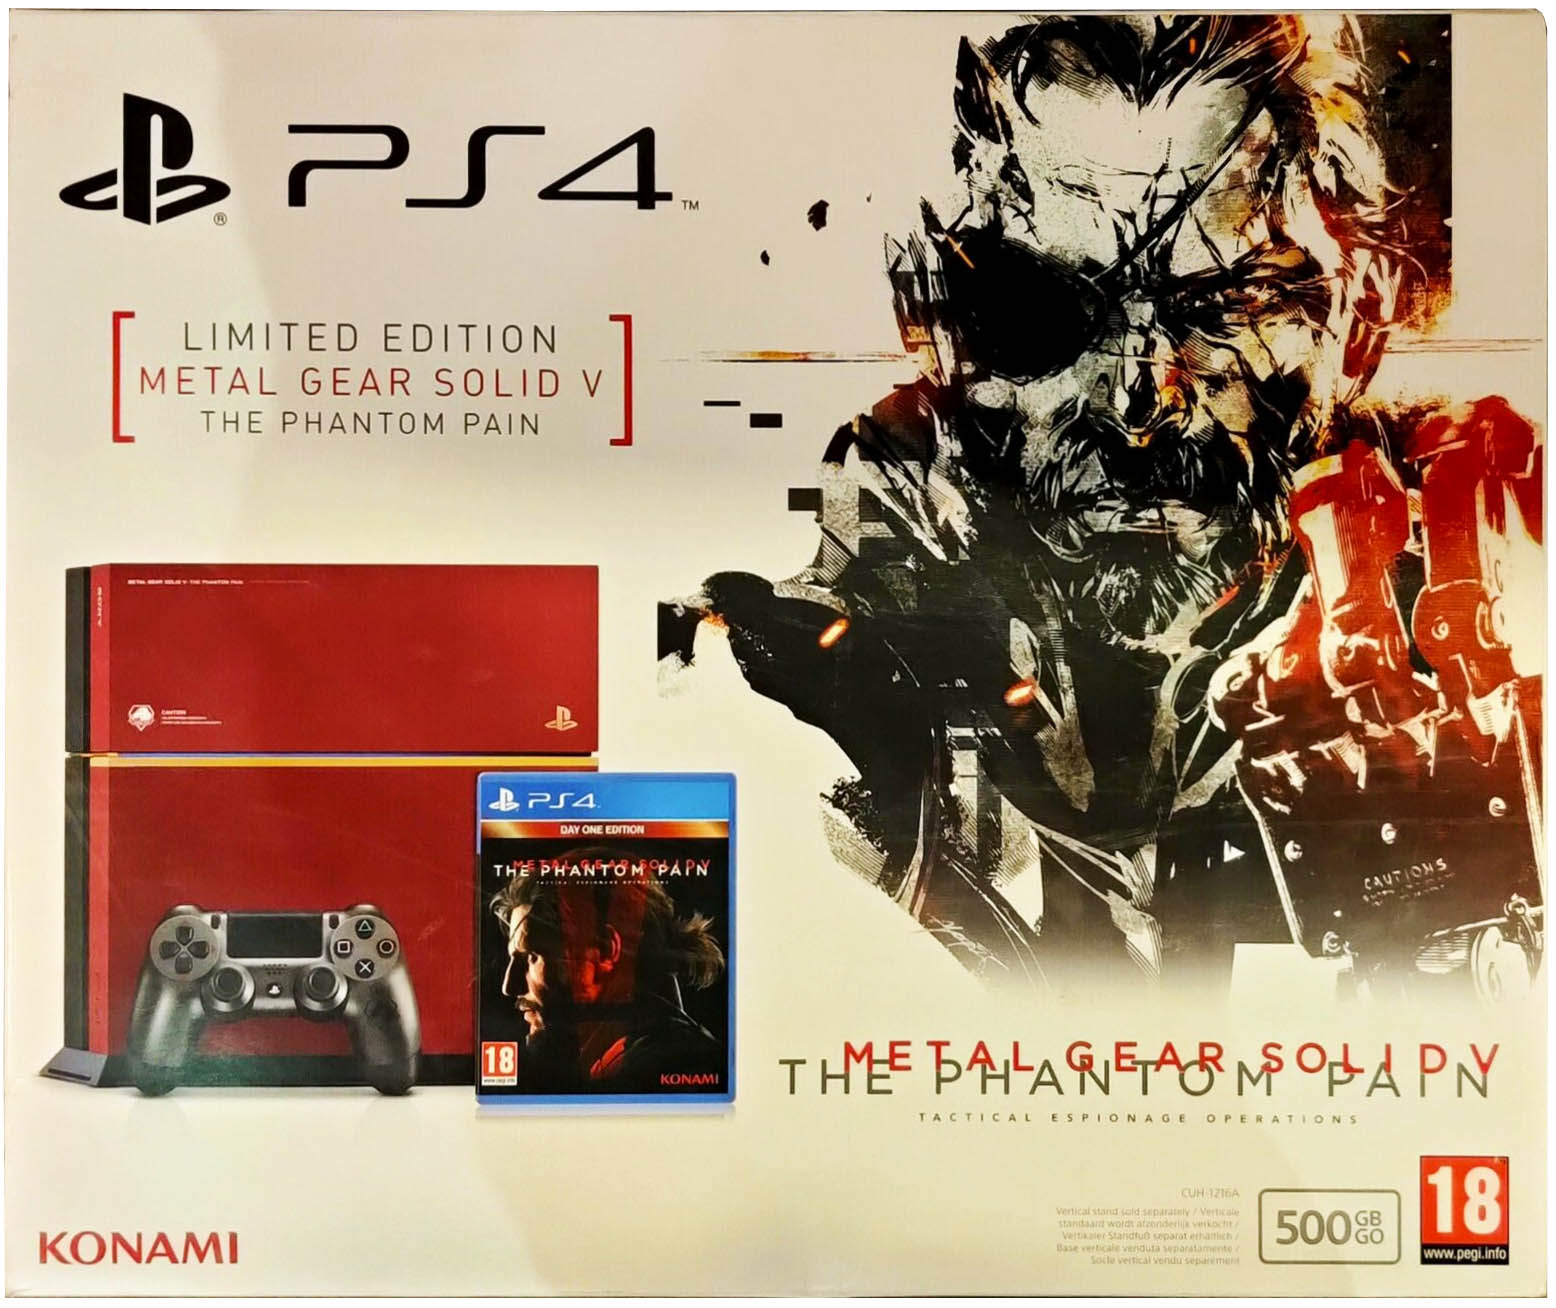 Metal Gear Solid V: The Phantom Pain (Day One Edition) PlayStation 4 Limited Edition Издание в Европе